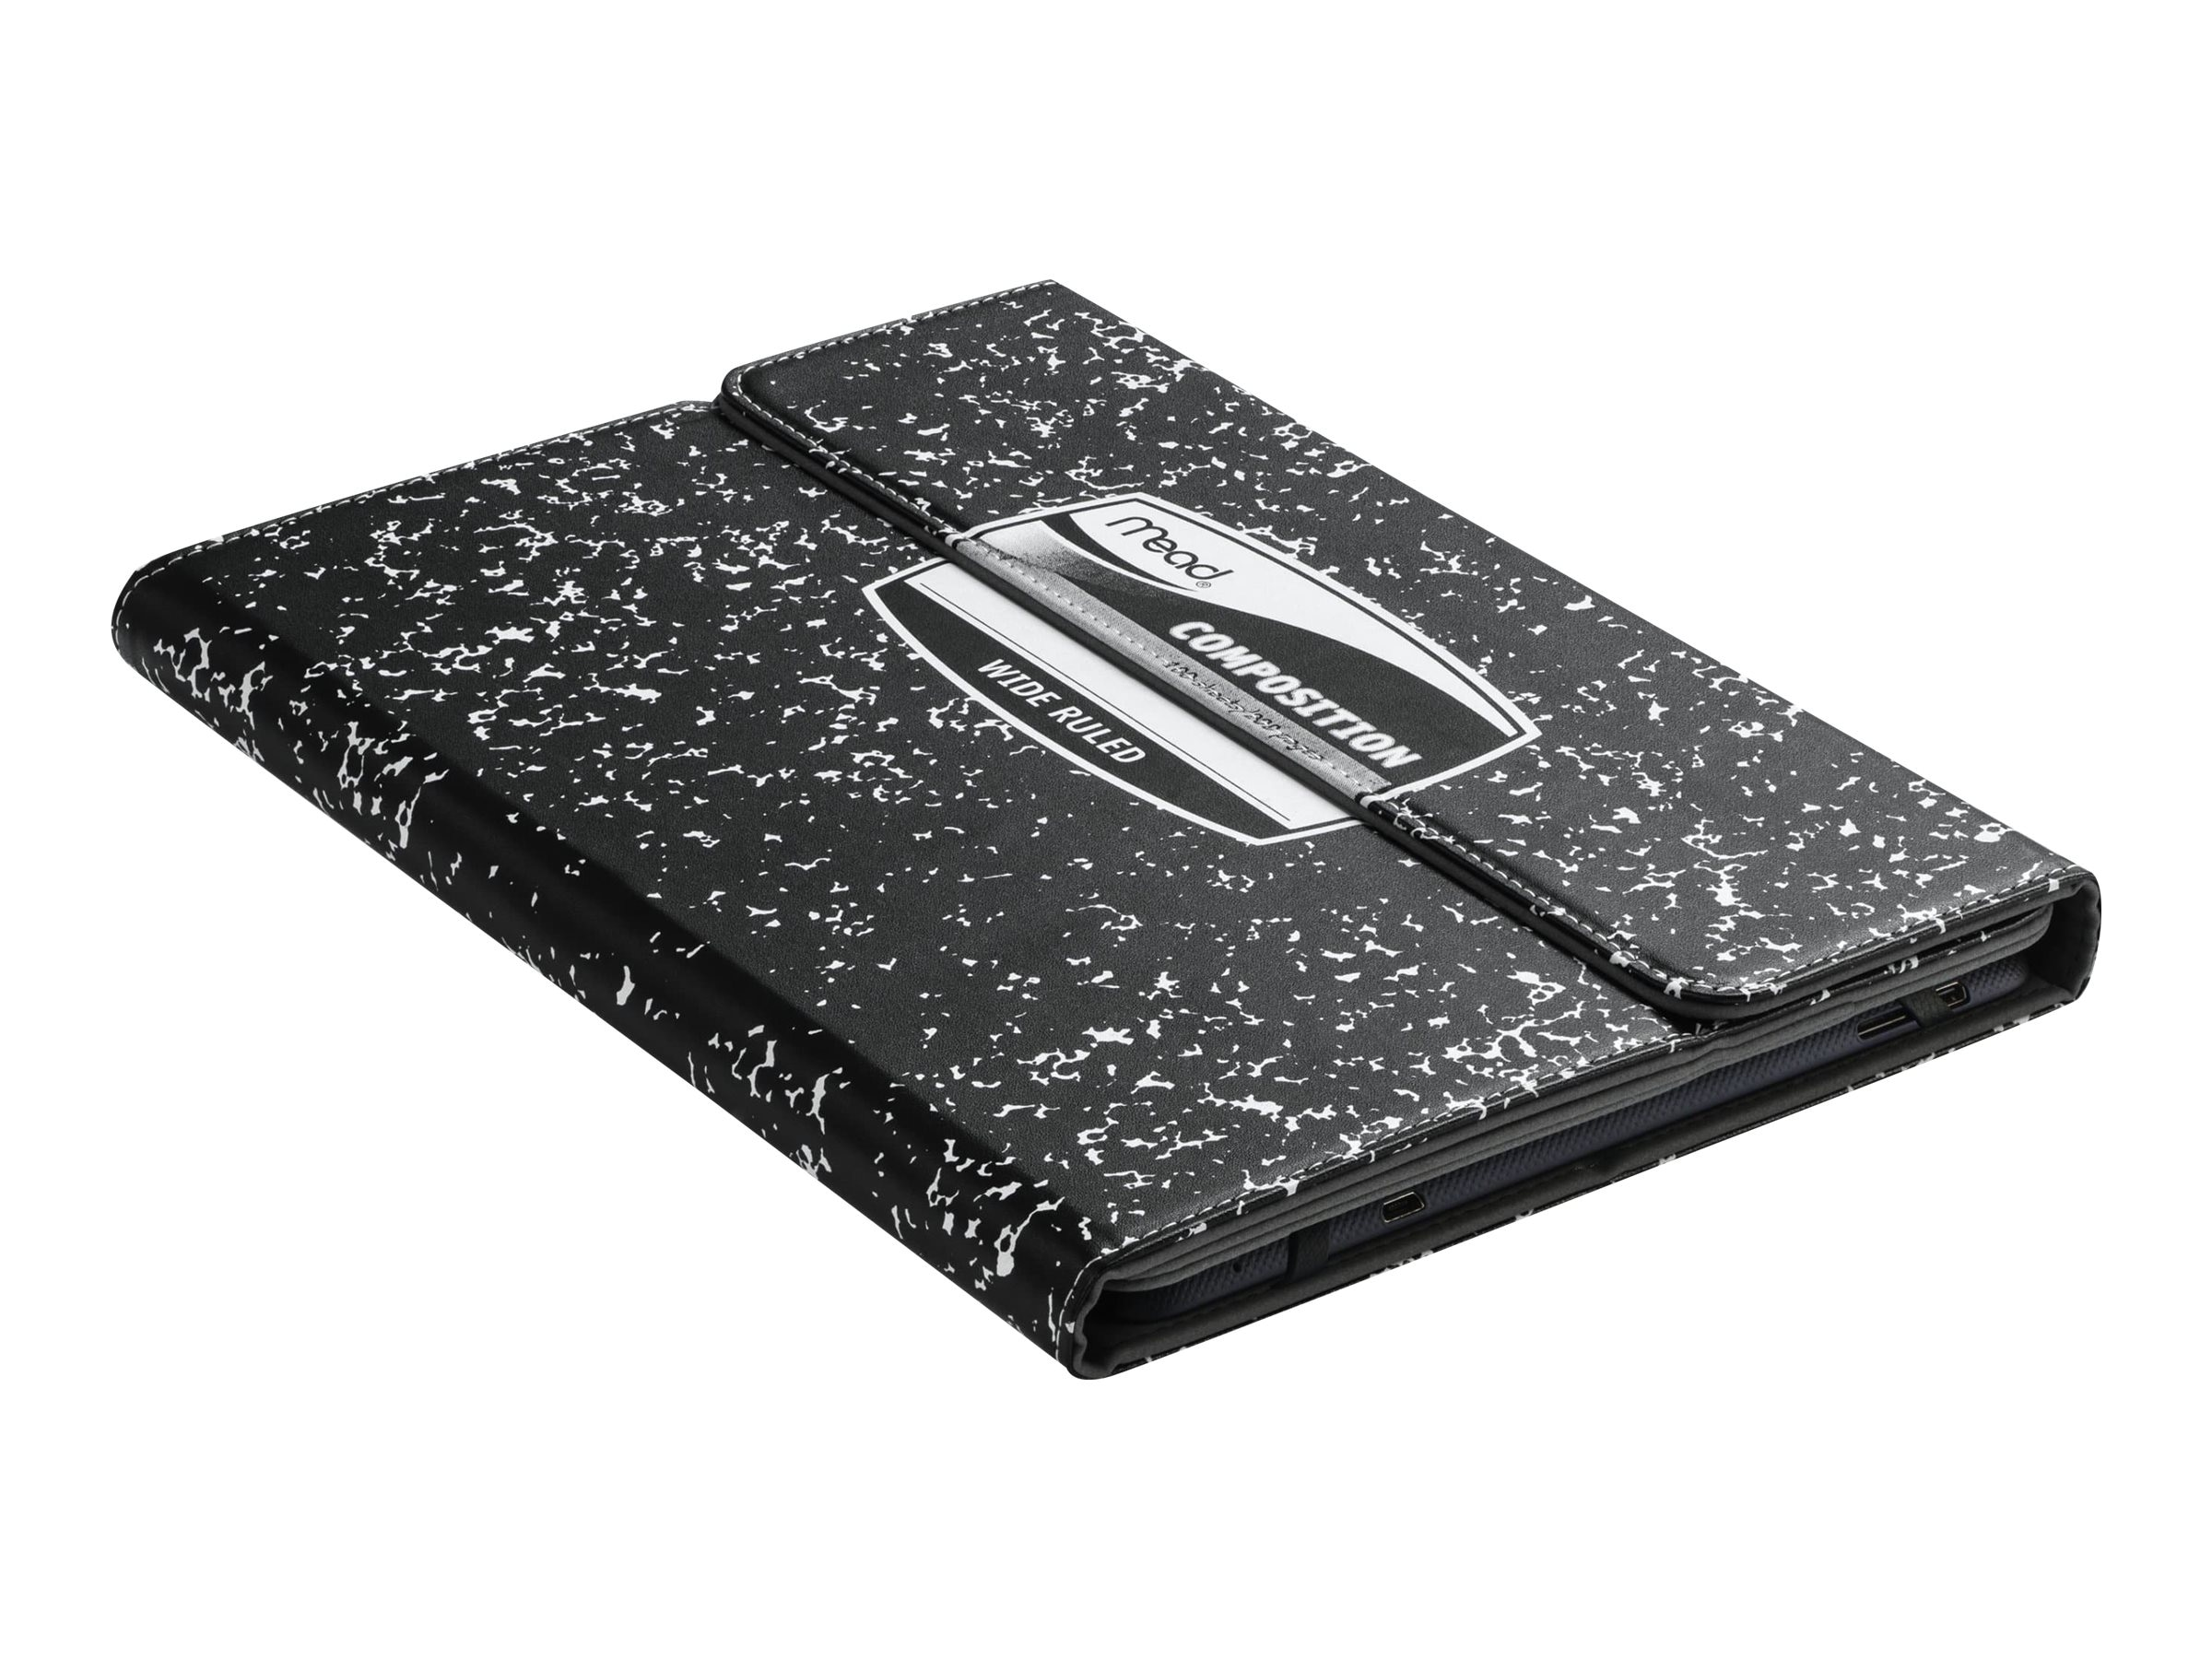 Kensington Composition Book Universal Case for 9 10 Tablets, Black, K97333WW